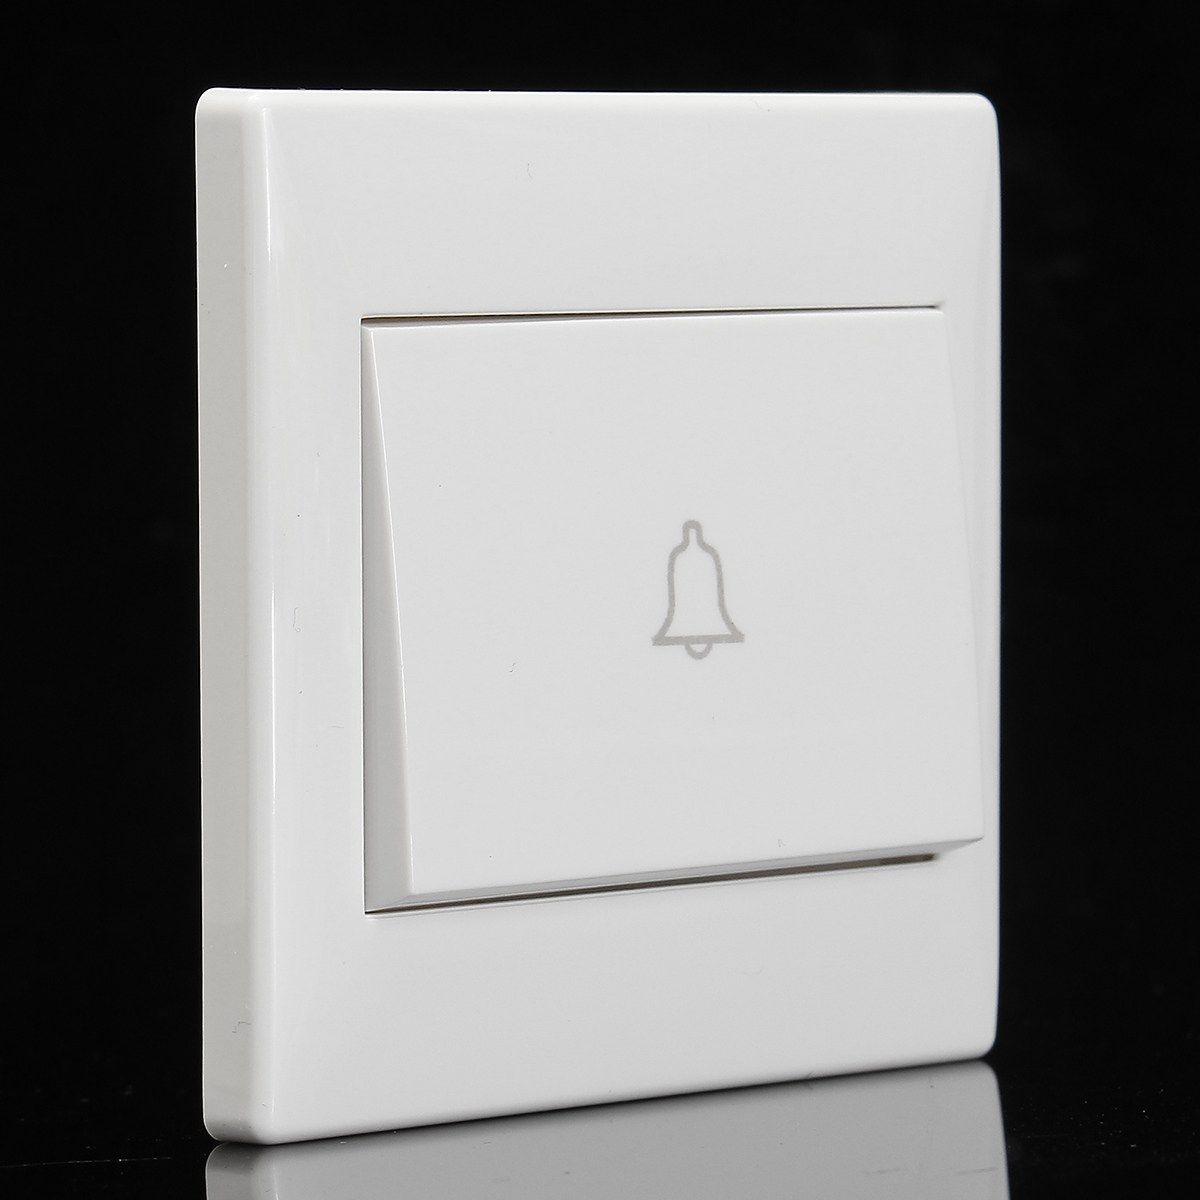 New 250v 10a White Doorbell Wall Switch Button Push Release Panel Home Office Access Control Accessories Access Control Doorbell Wall